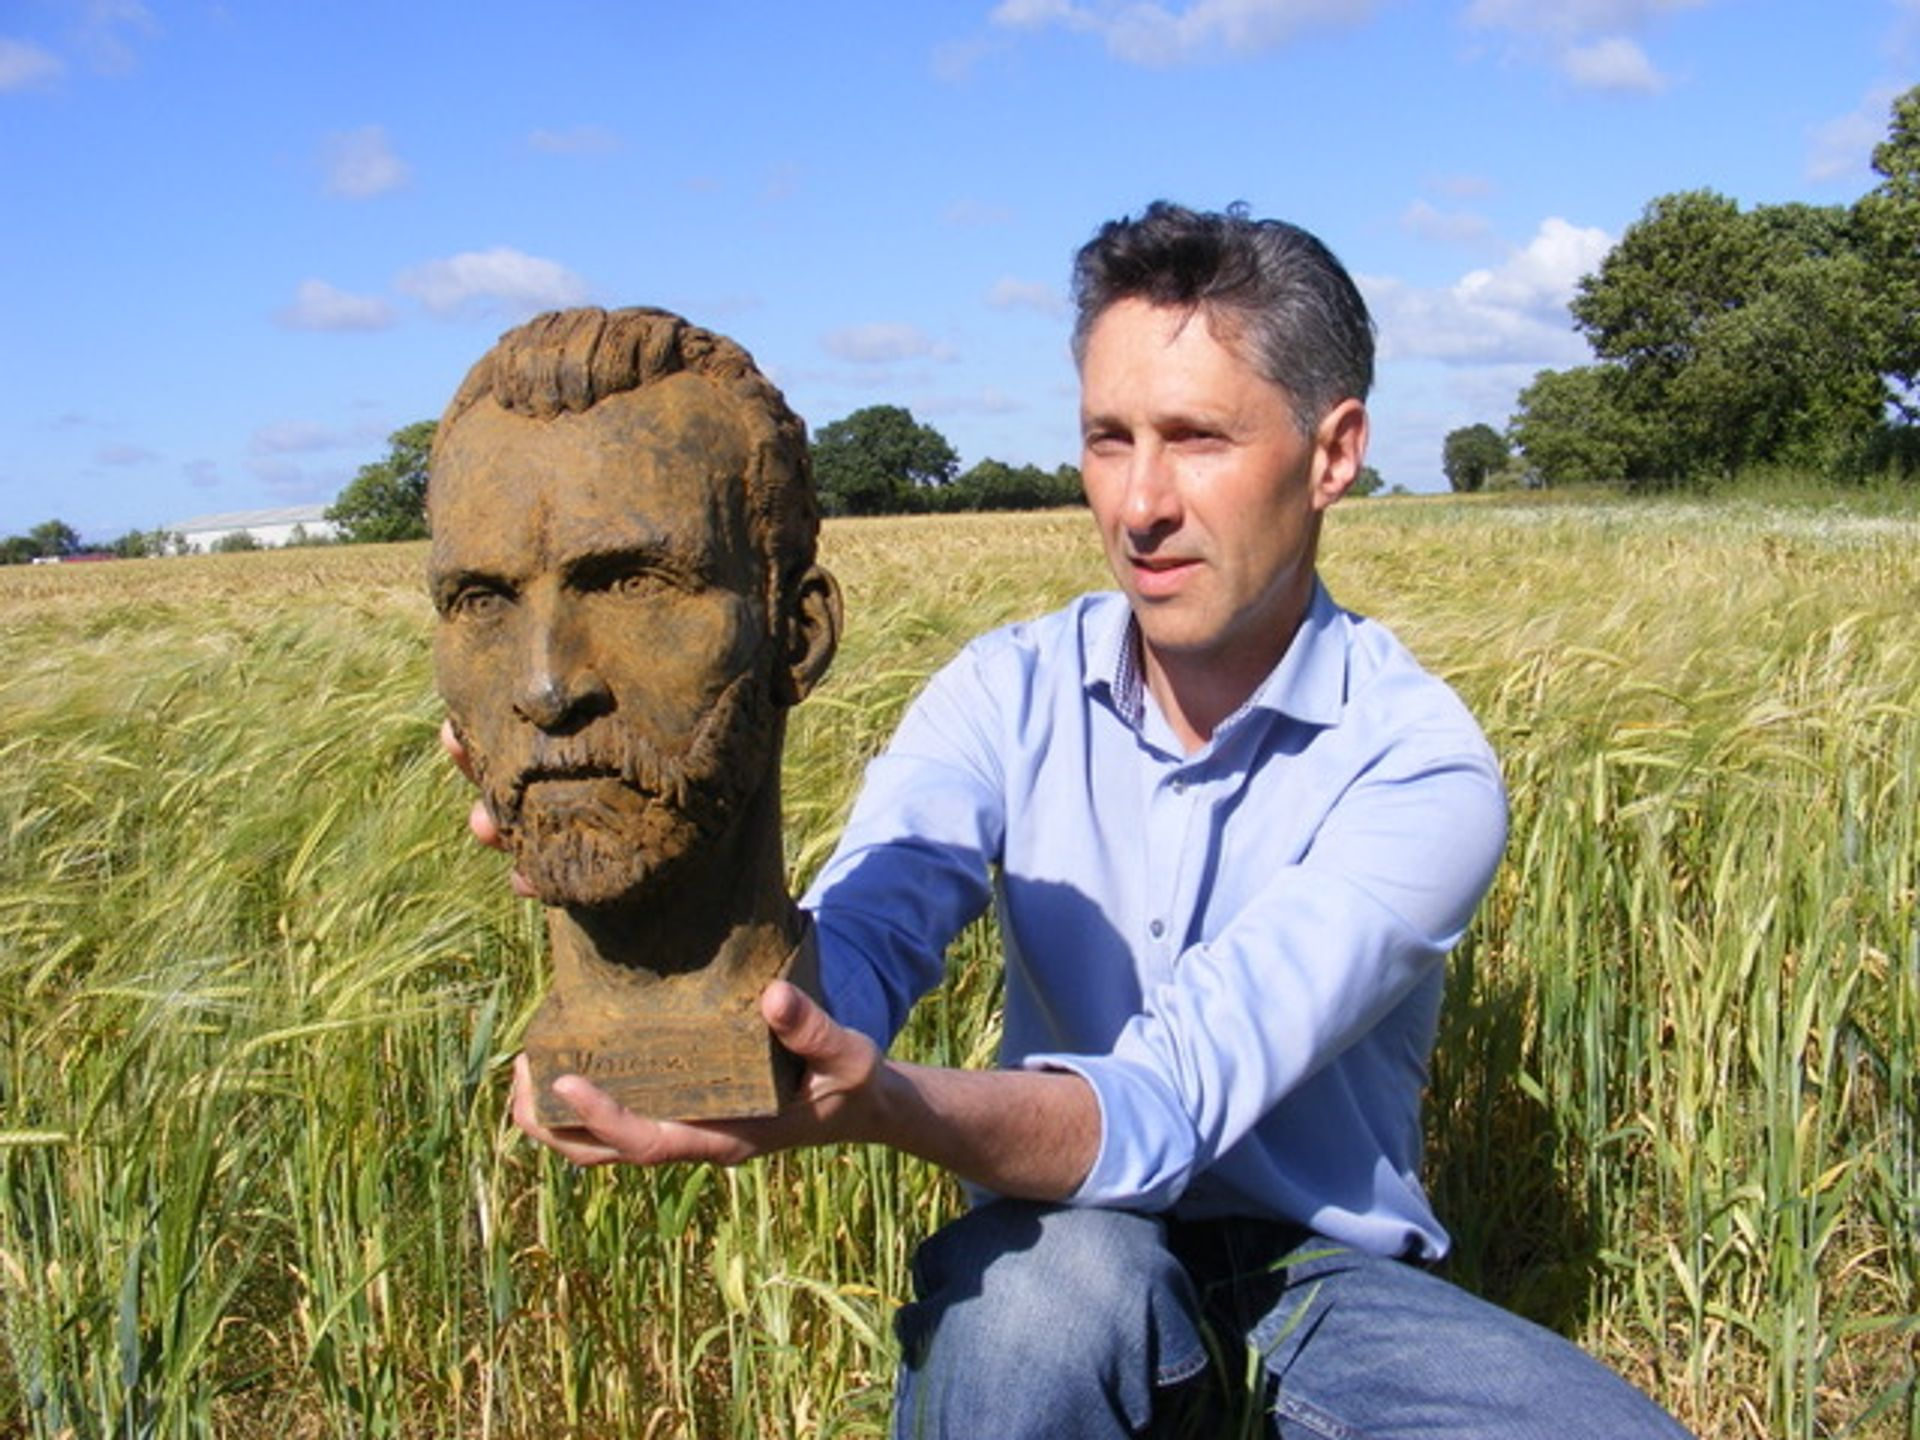 Anthony Padgett with his Van Gogh sculpture, photographed in a Lancashire wheatfield, 2018